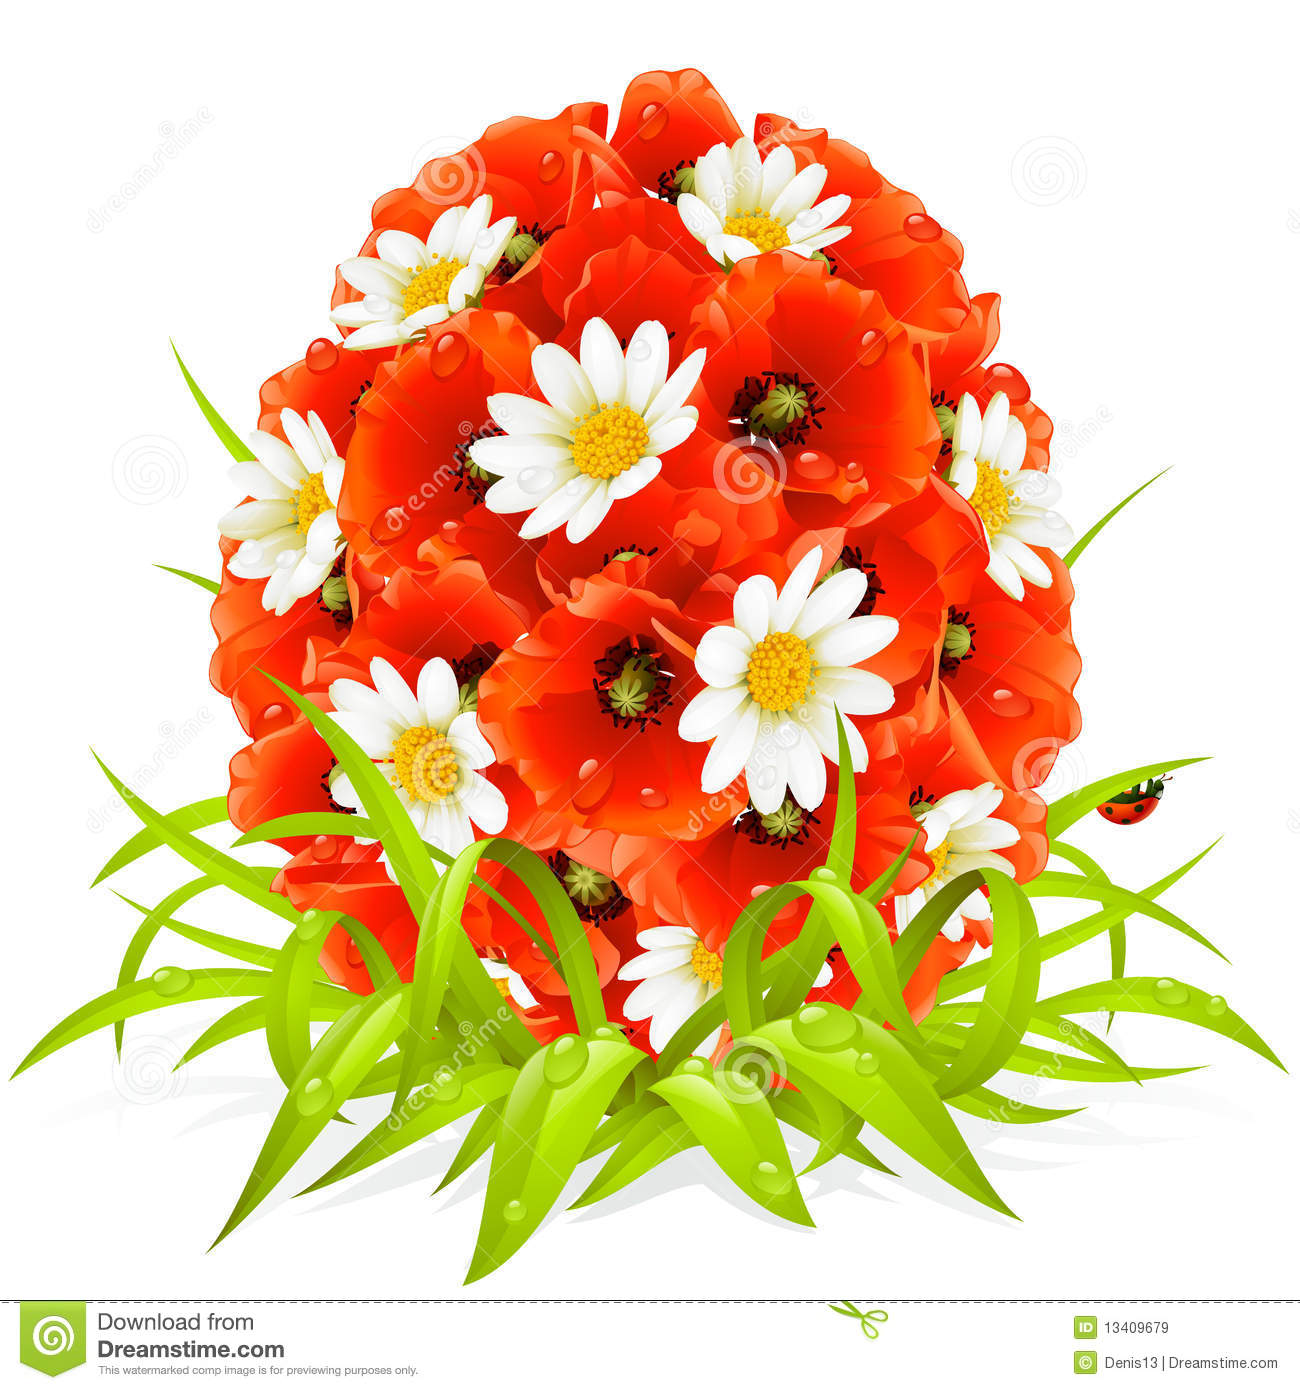 Free photos of spring flowers banner download Vector Spring Flowers In The Shape Of Easter Egg Royalty Free ... banner download